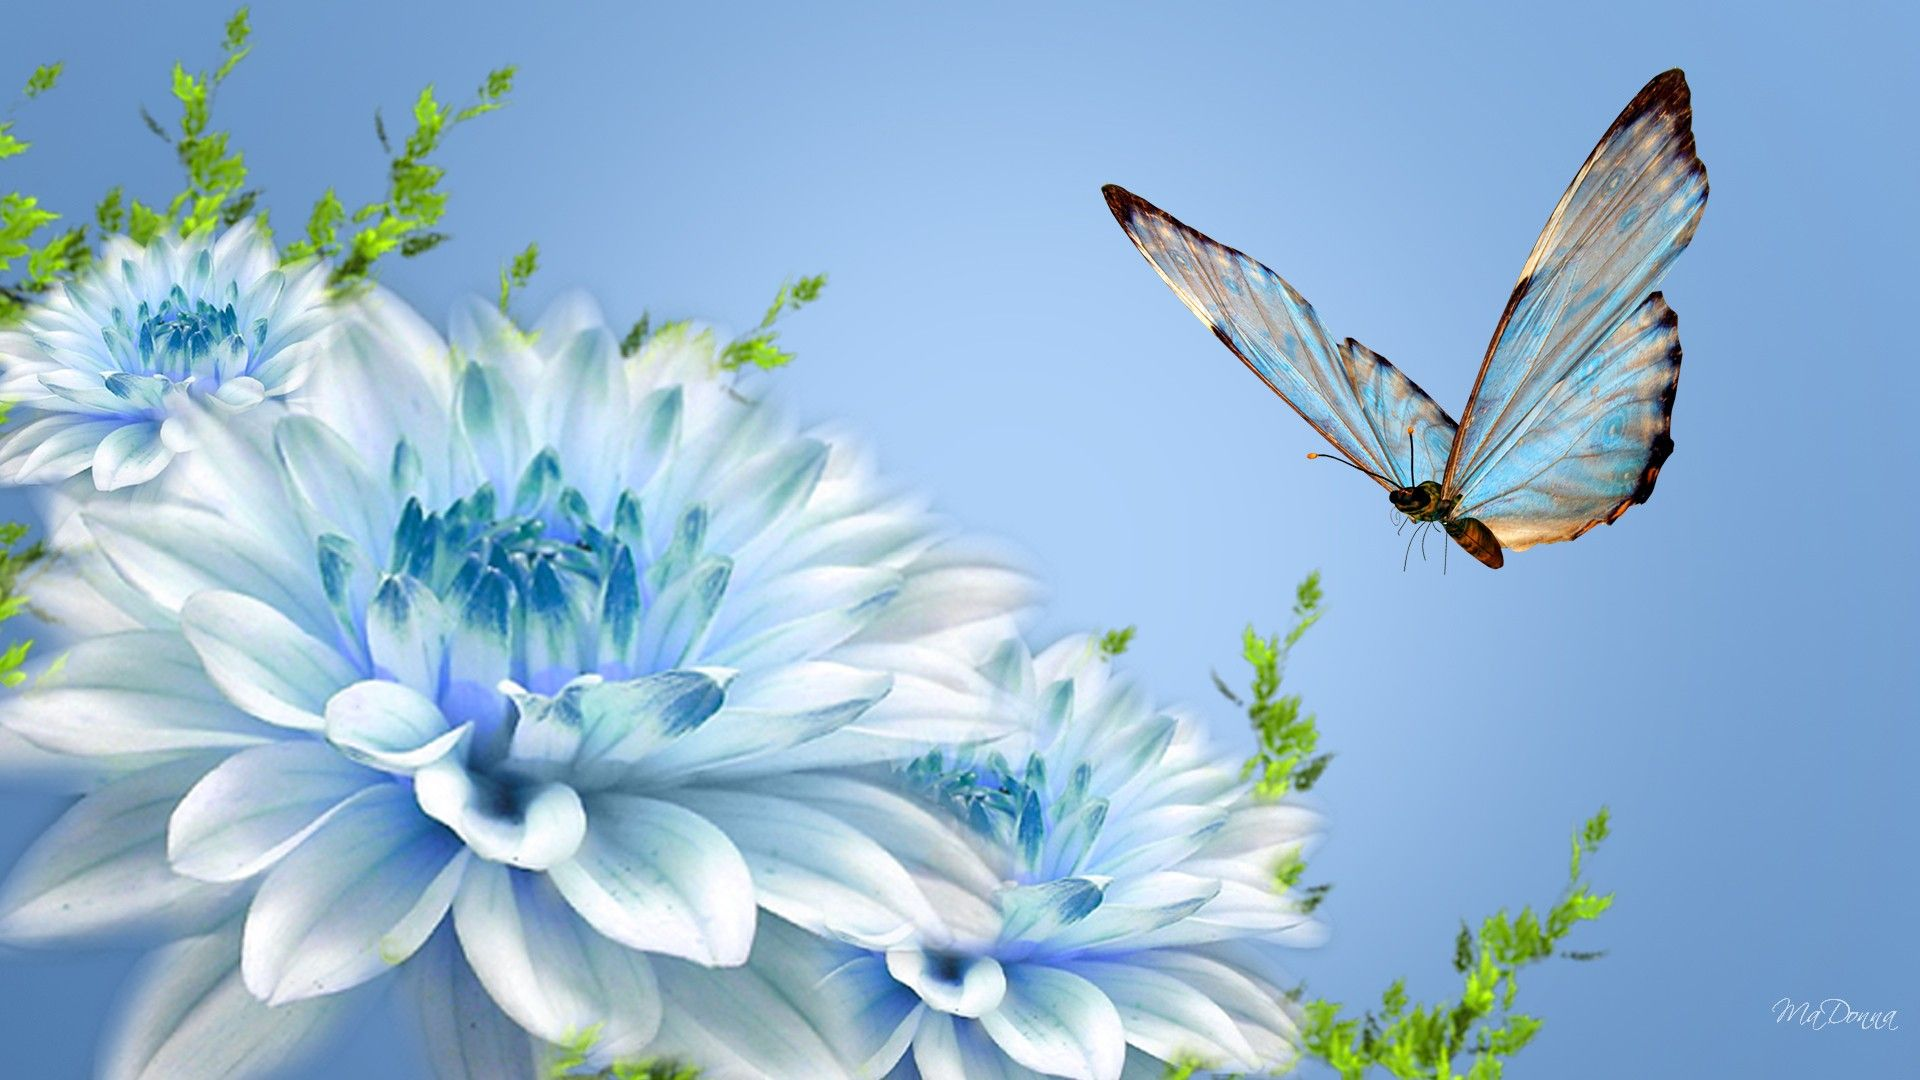 Spring Butterfly Wallpapers - Top Free Spring Butterfly ...